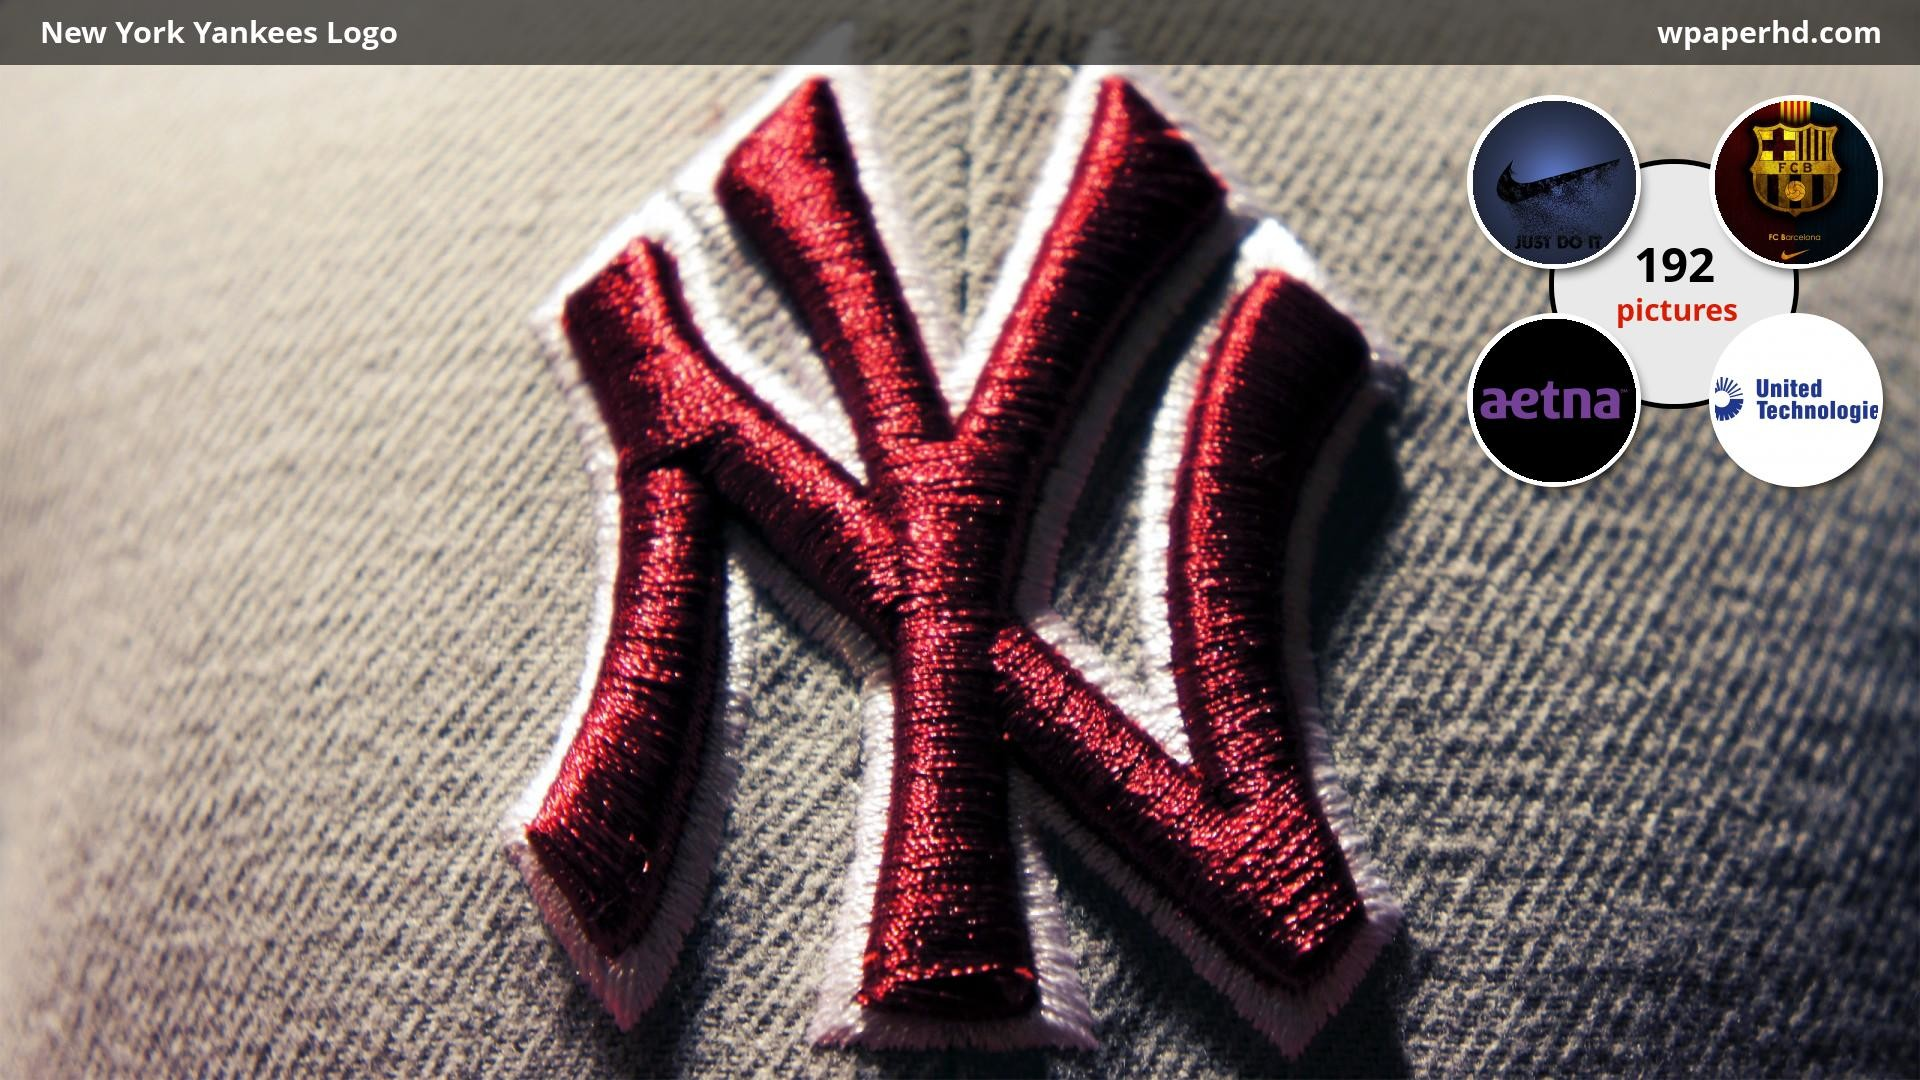 Res: 1920x1080, New York Yankees Logo Wallpaper